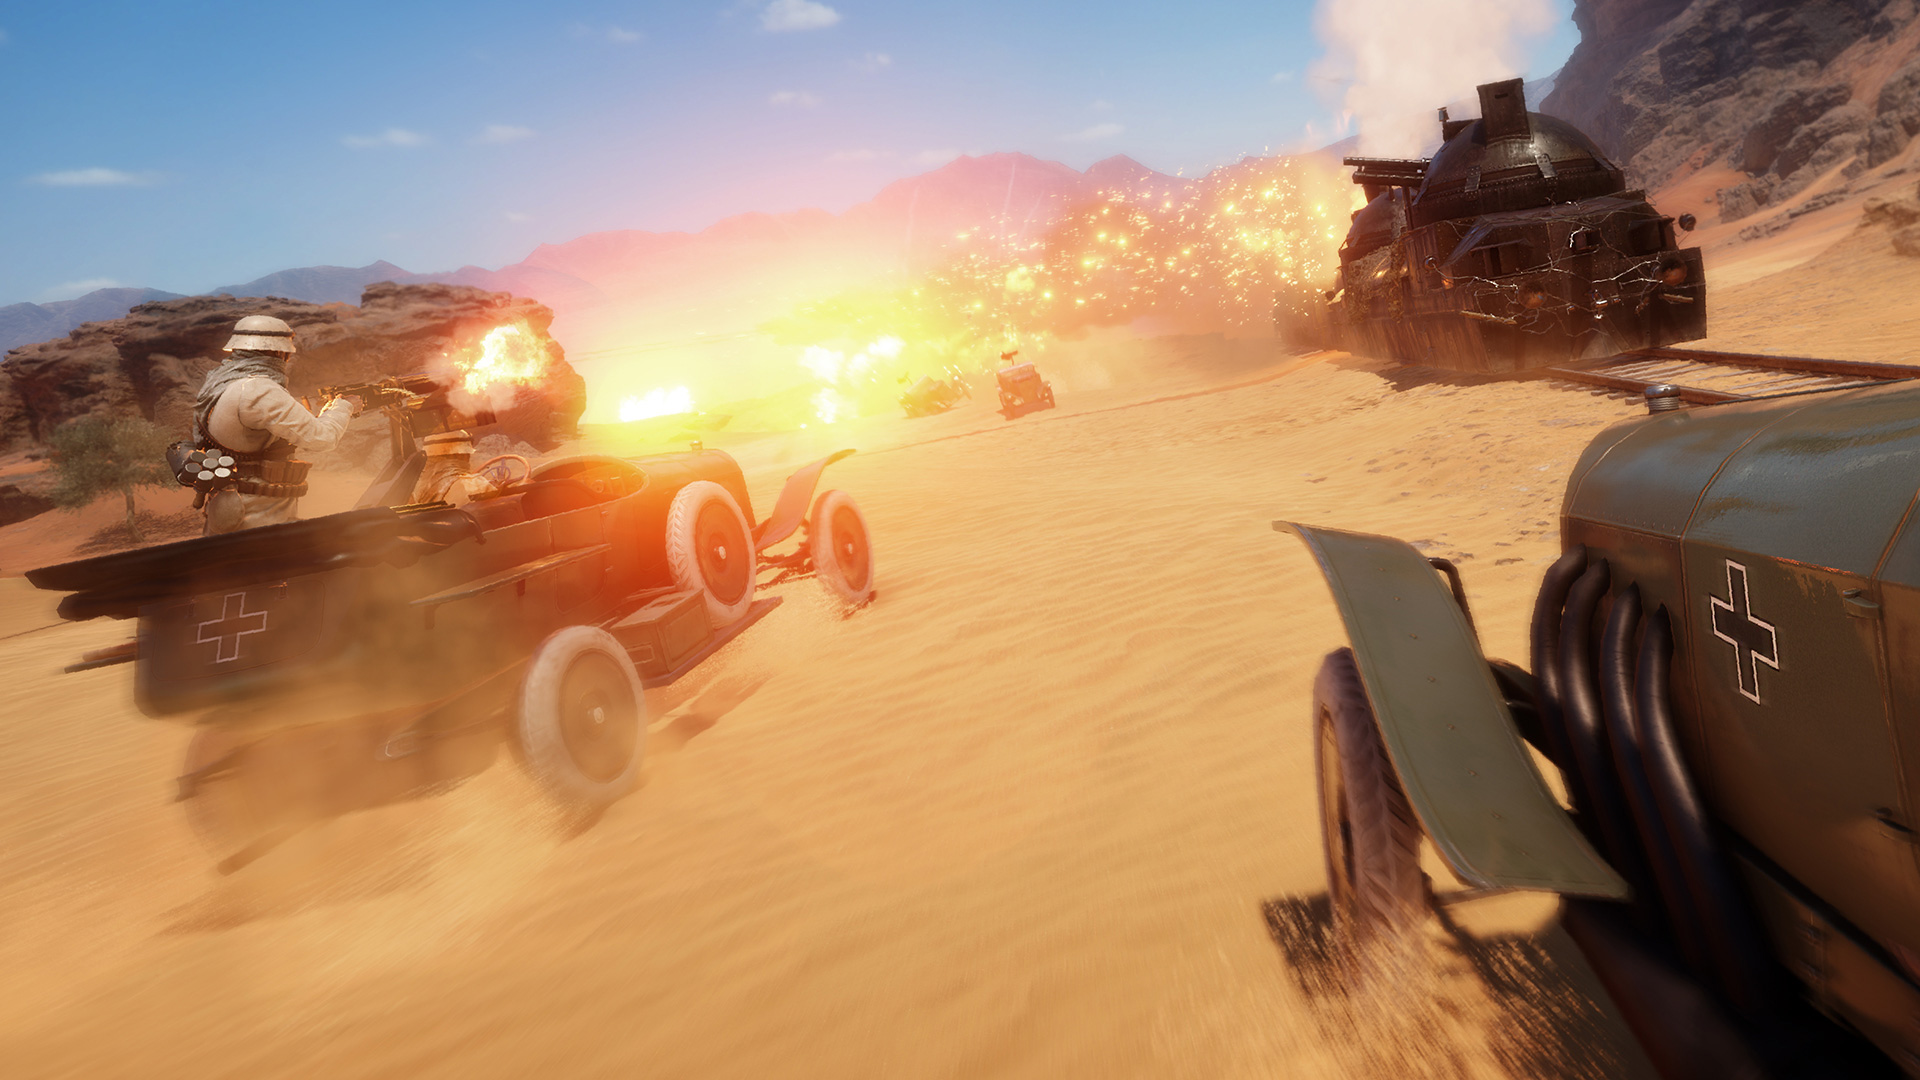 Battlefield 1 Patch 1 02 Out Now For PC/XO/PS4